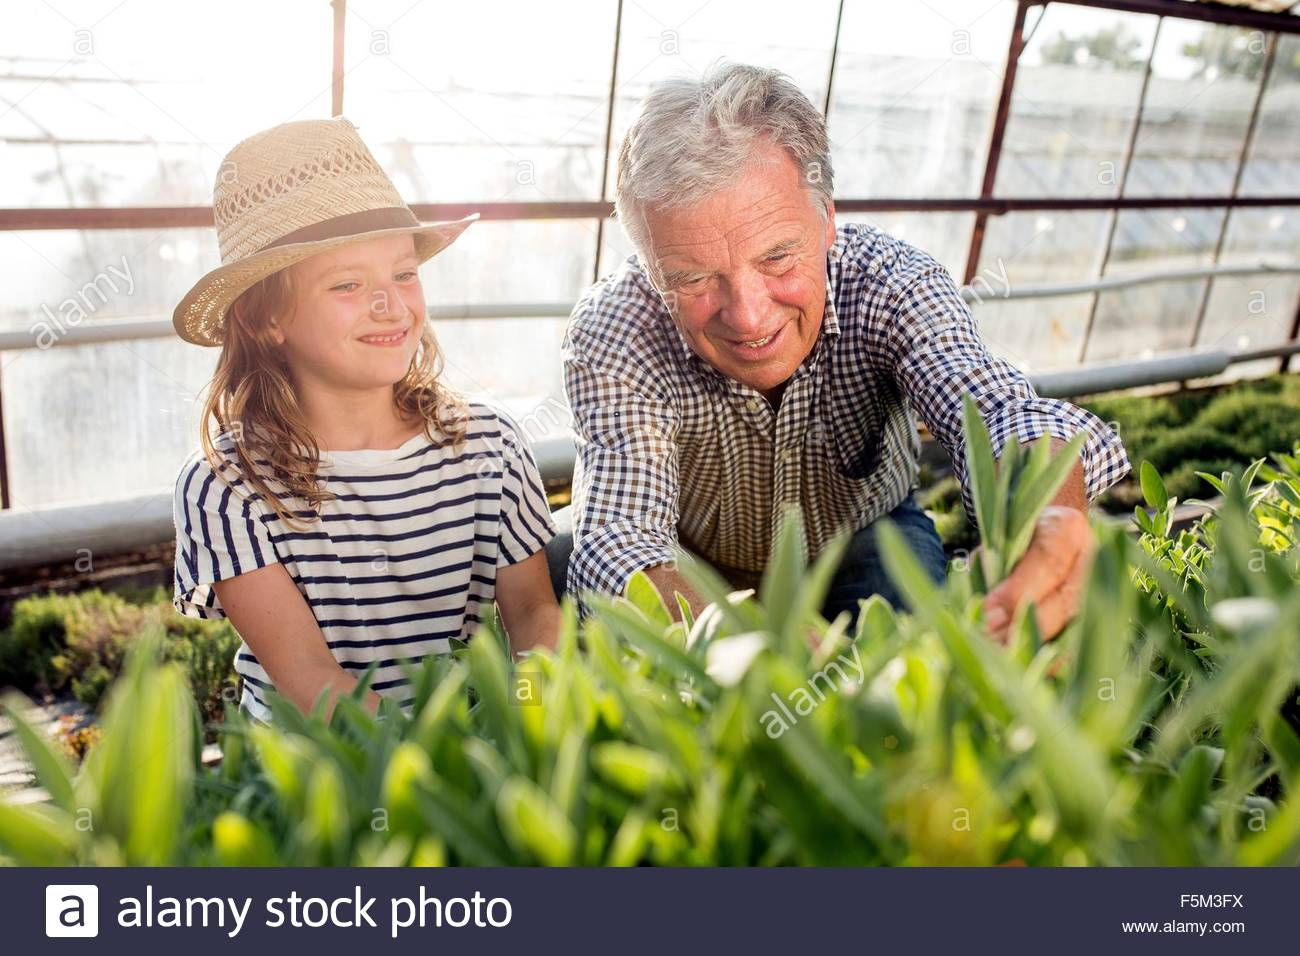 Grandfather and granddaughter in hothouse smelling plants smiling - Stock Image